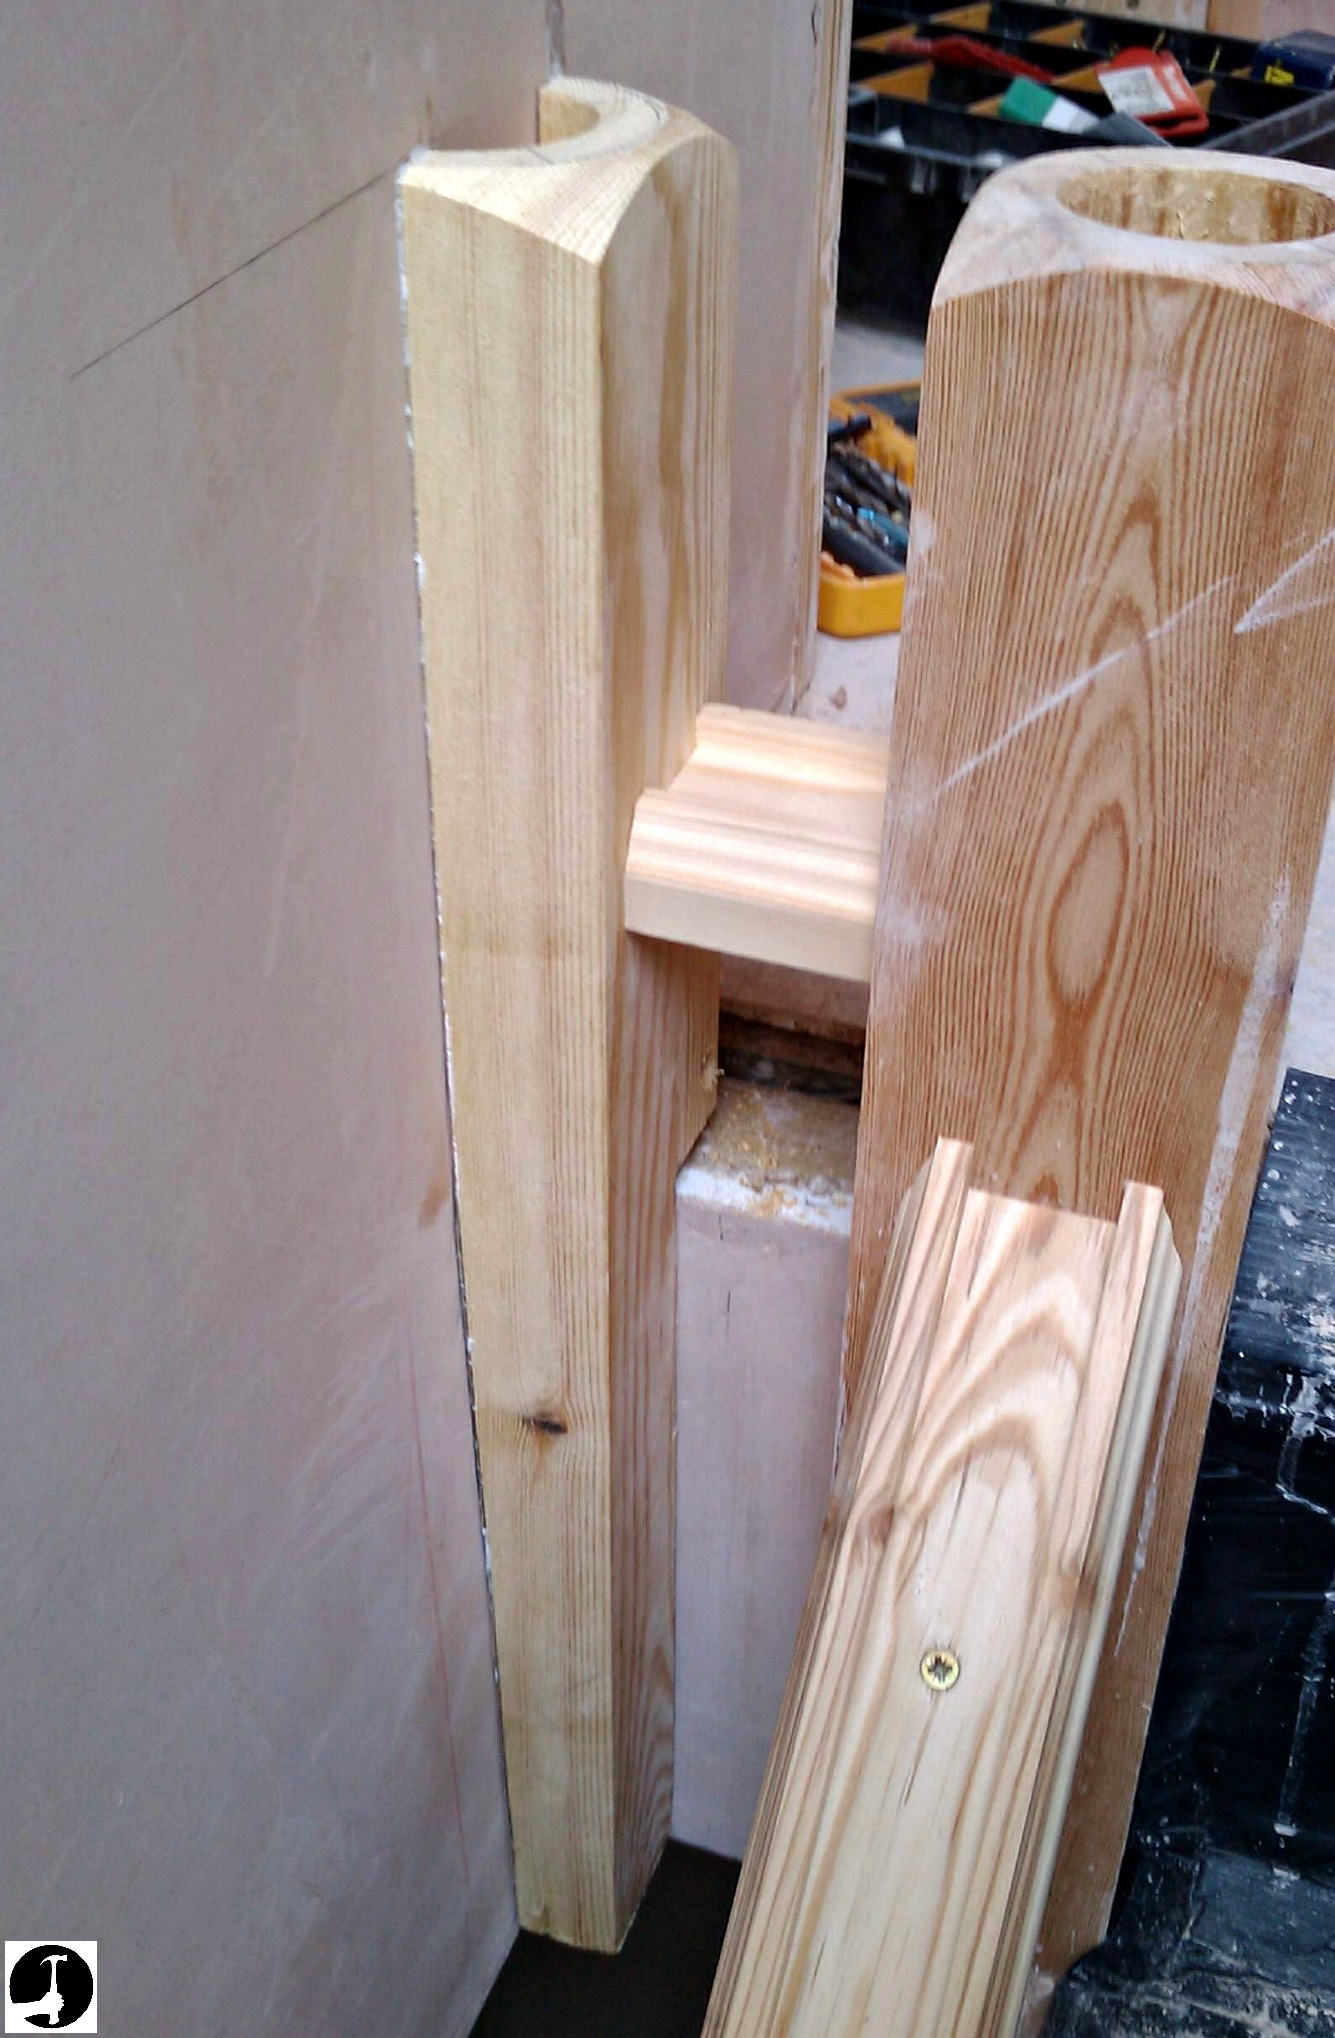 Fixing a half newel post